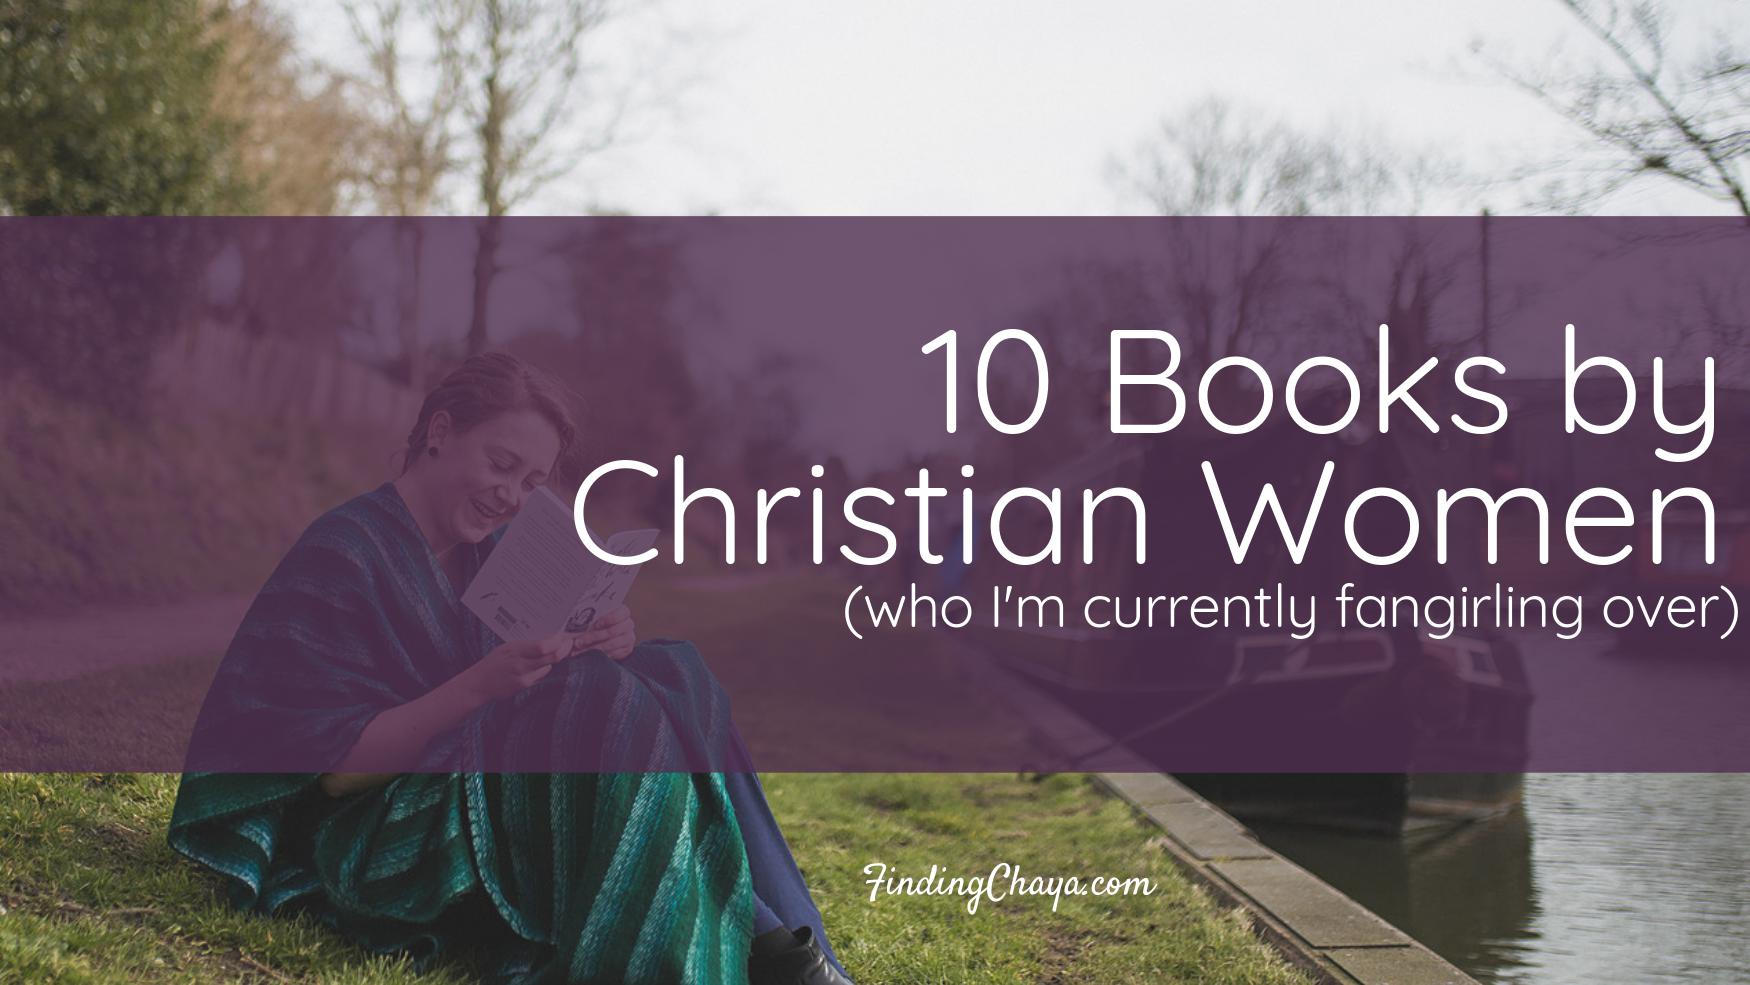 10 Books by Christian Women